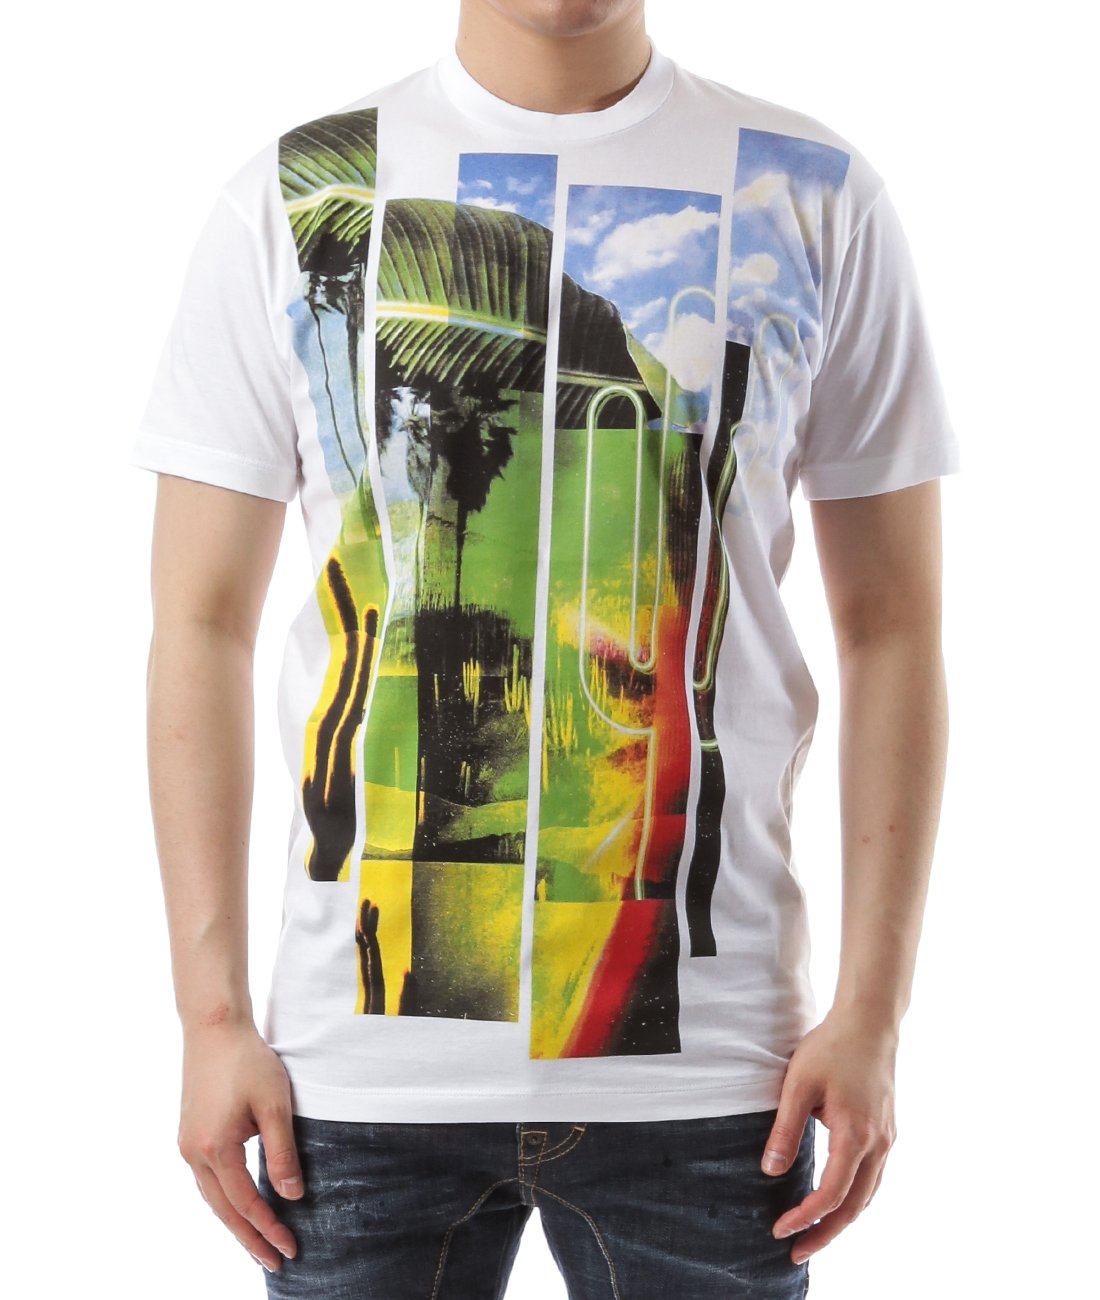 Wiberlux Dsquared2 Men's Colorful Summer-Themed Print T-Shirt XL White